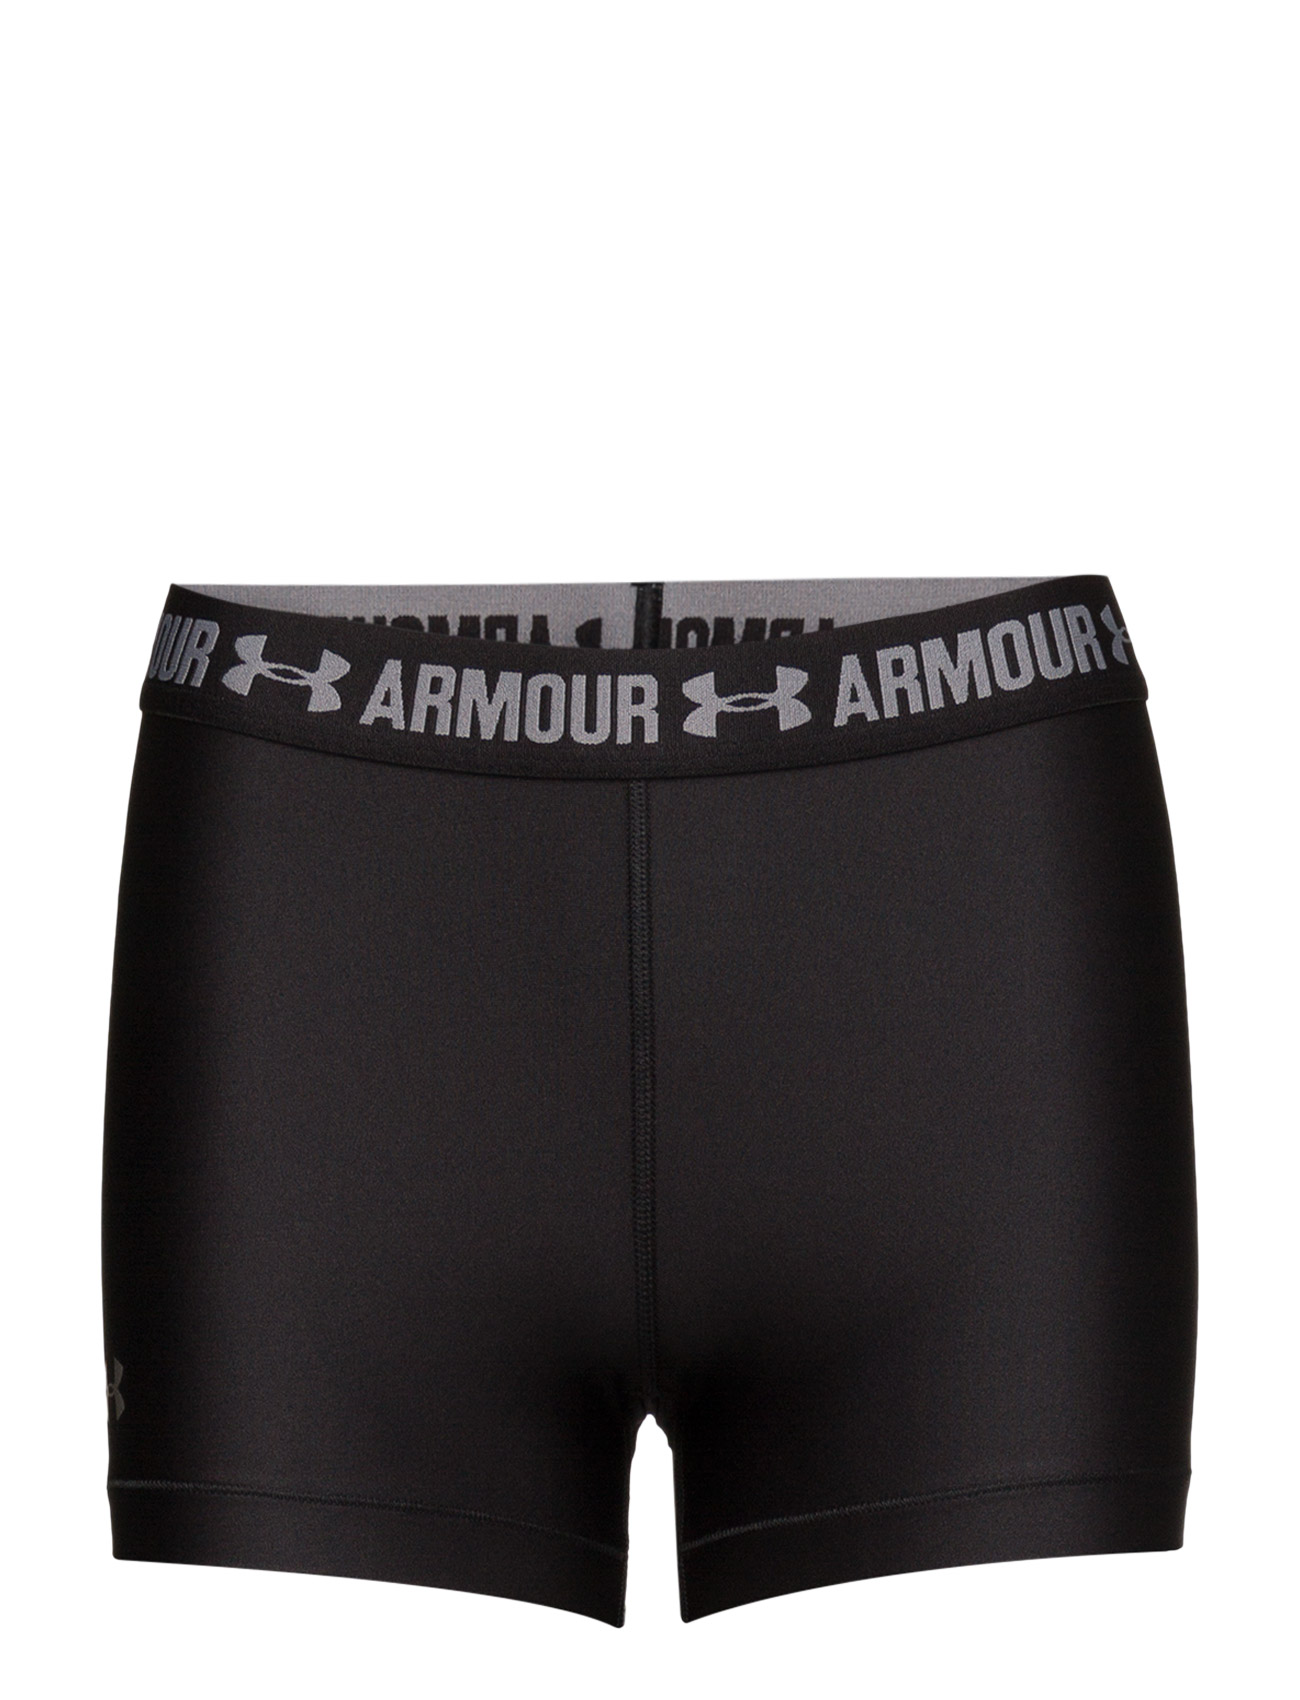 under armour Ua hg armour shorty fra boozt.com dk